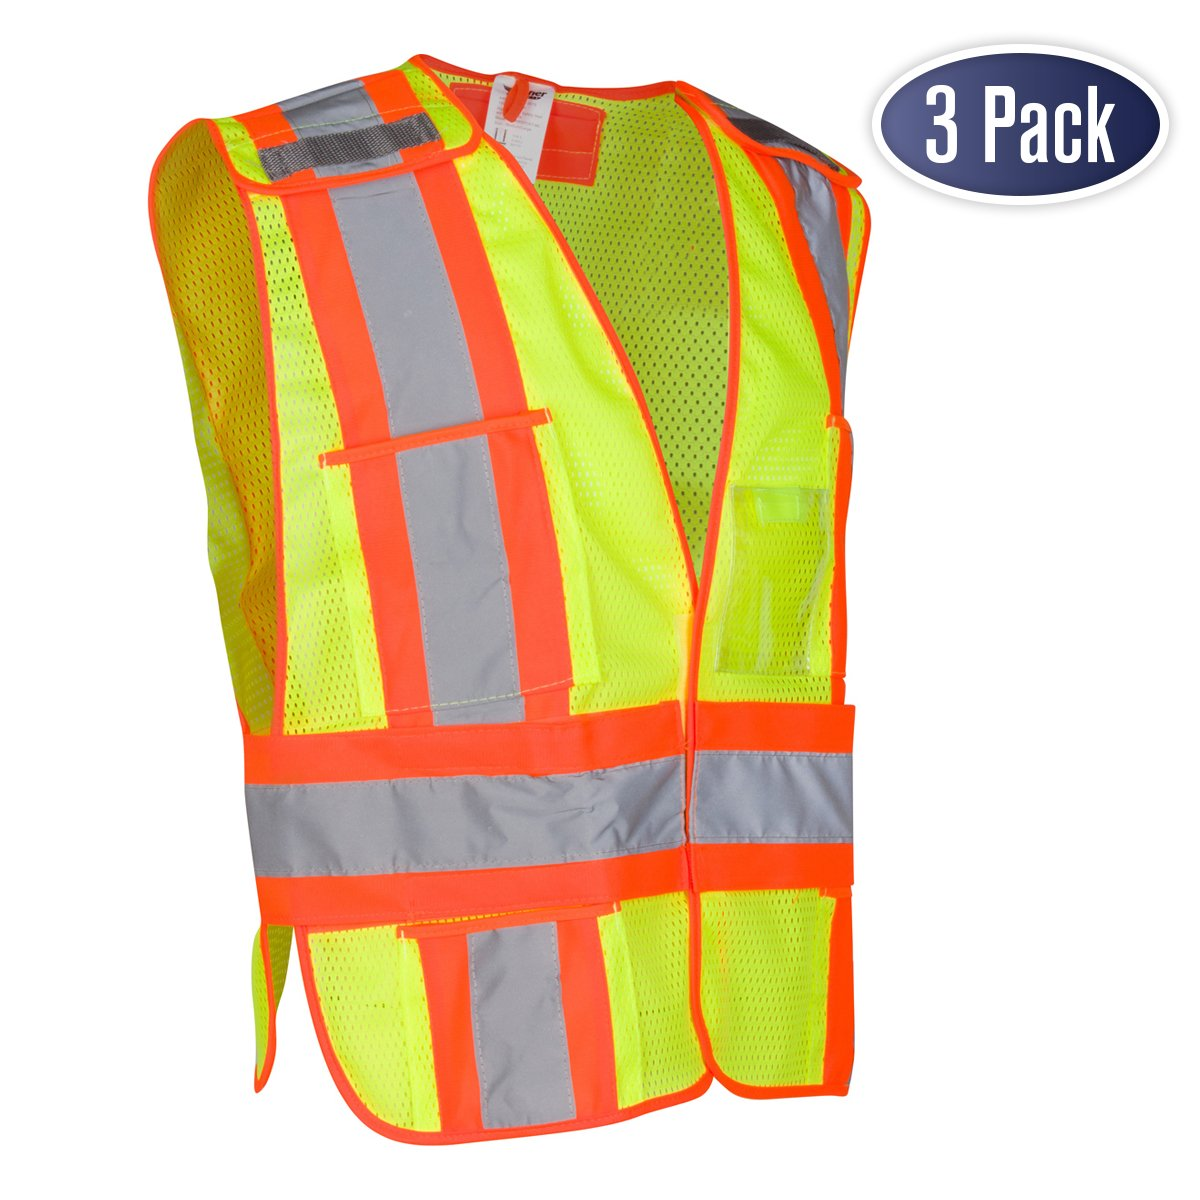 High Visibility Safety Vest - ANSI Class 2 Breakaway Vest with 5 Pockets, Yellow with Adjustable Hook and Loop Closure, Hi Vis Breathable Mesh, Heavy Duty Work Wear for Men or Women, 3 Pack (XL/XXL)